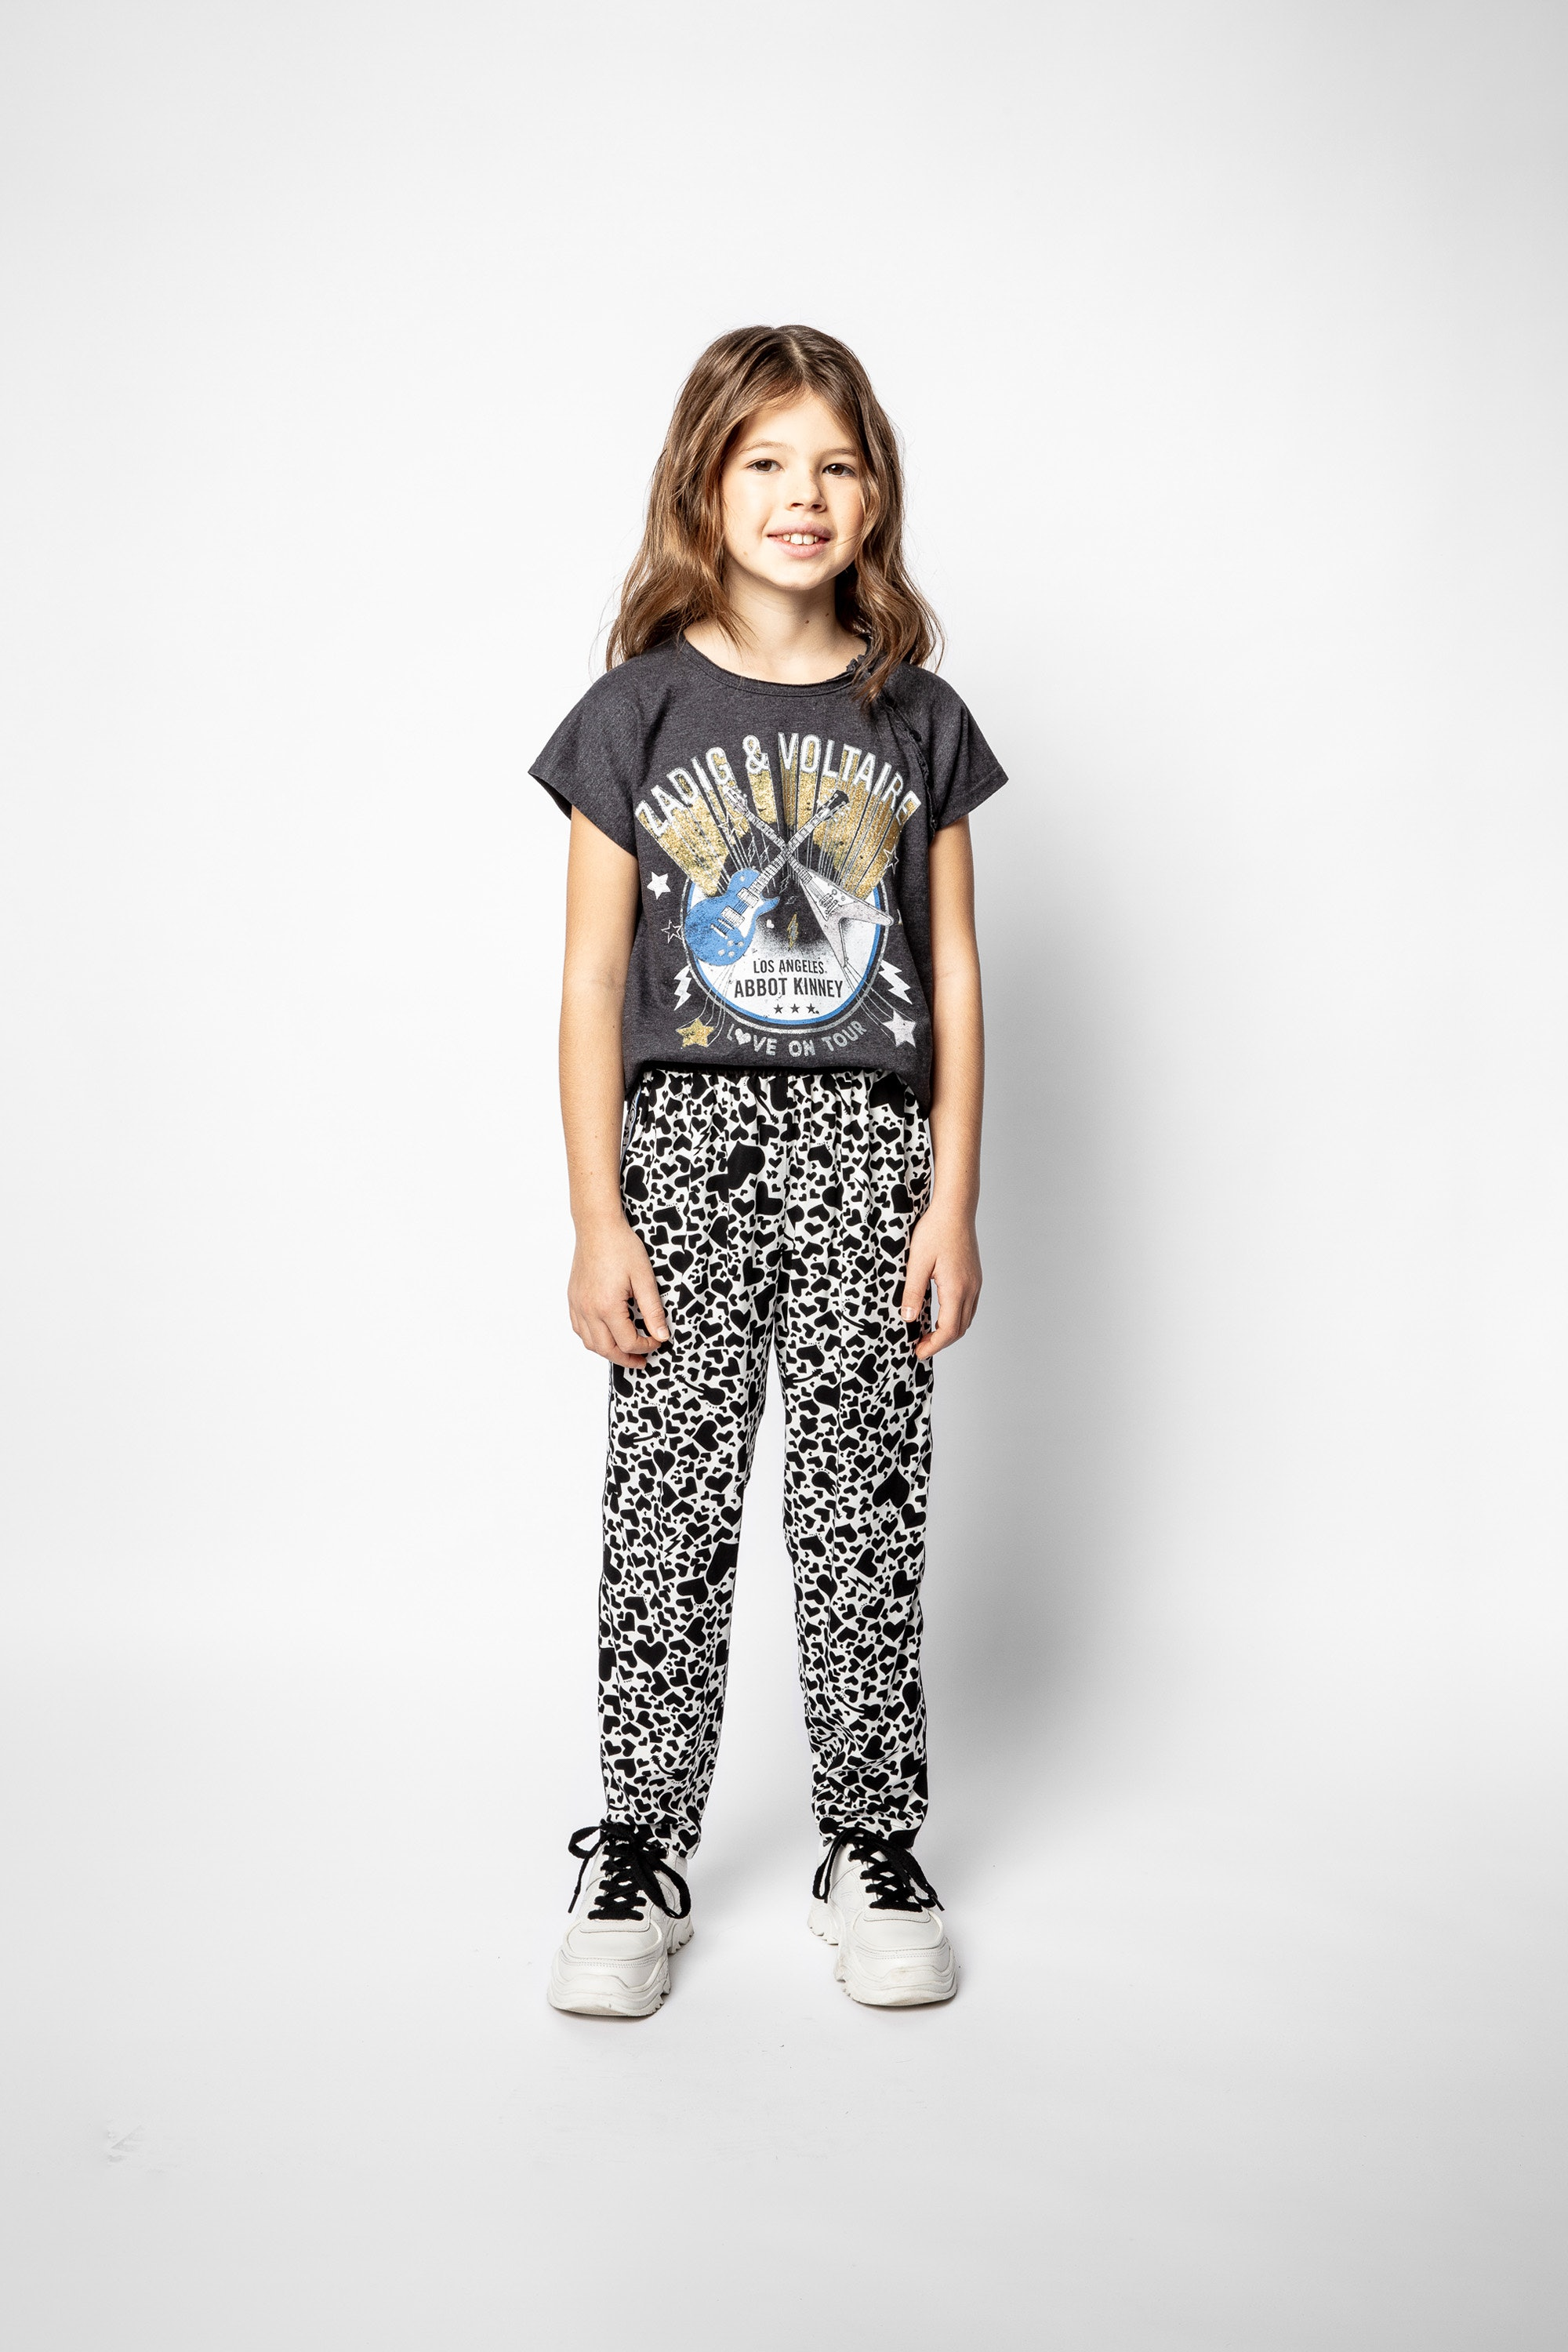 Child's Paris pants